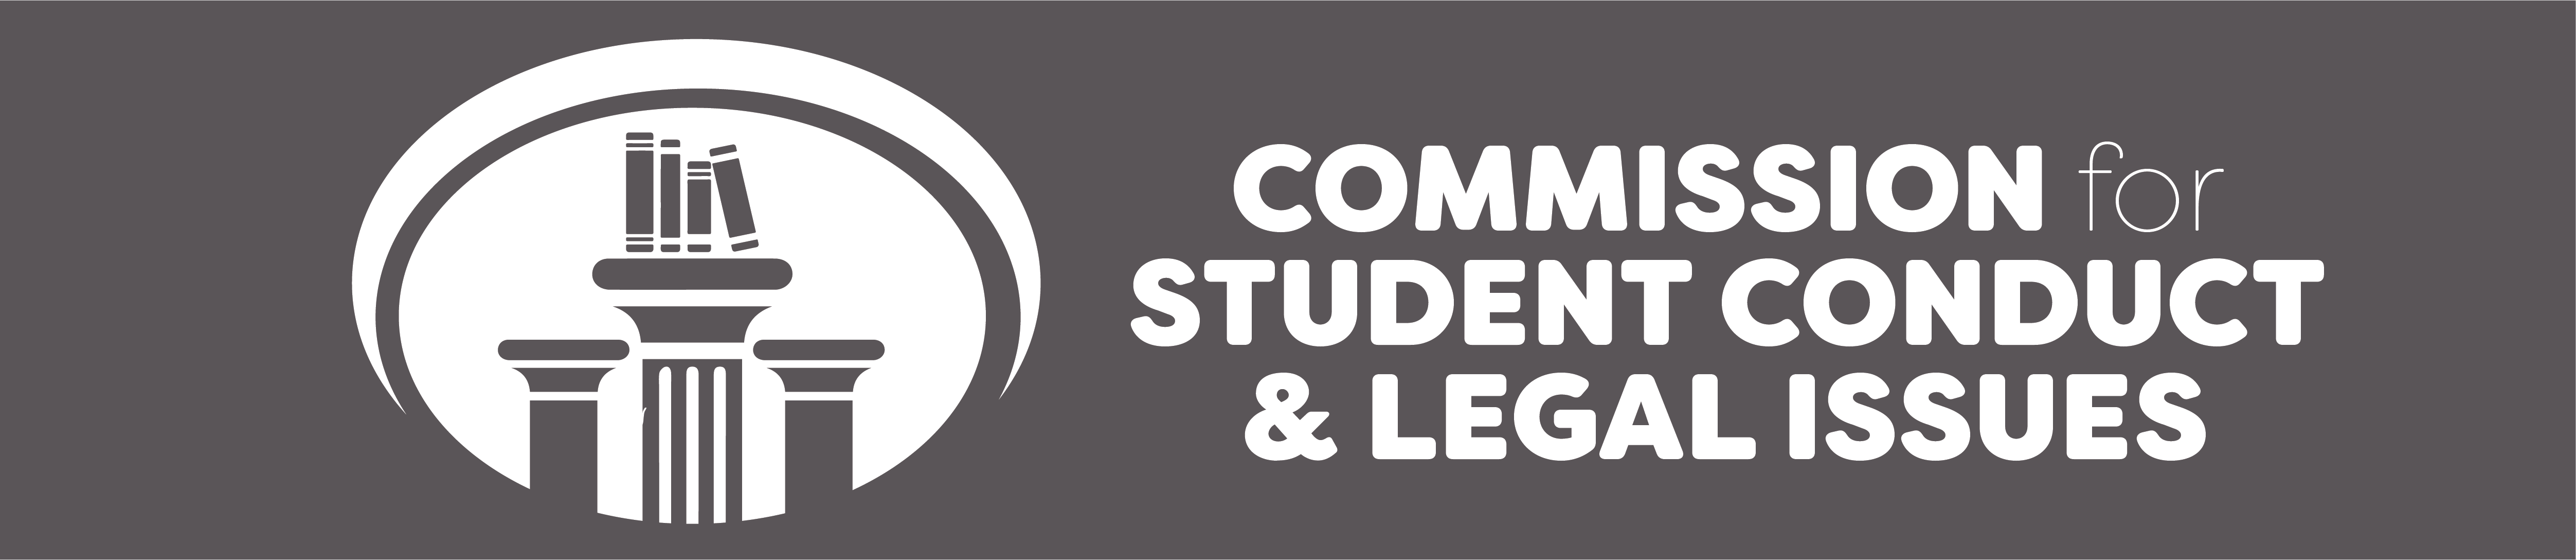 COMMISSION FOR STUDENT CONDUCT & LEGAL ISSUES